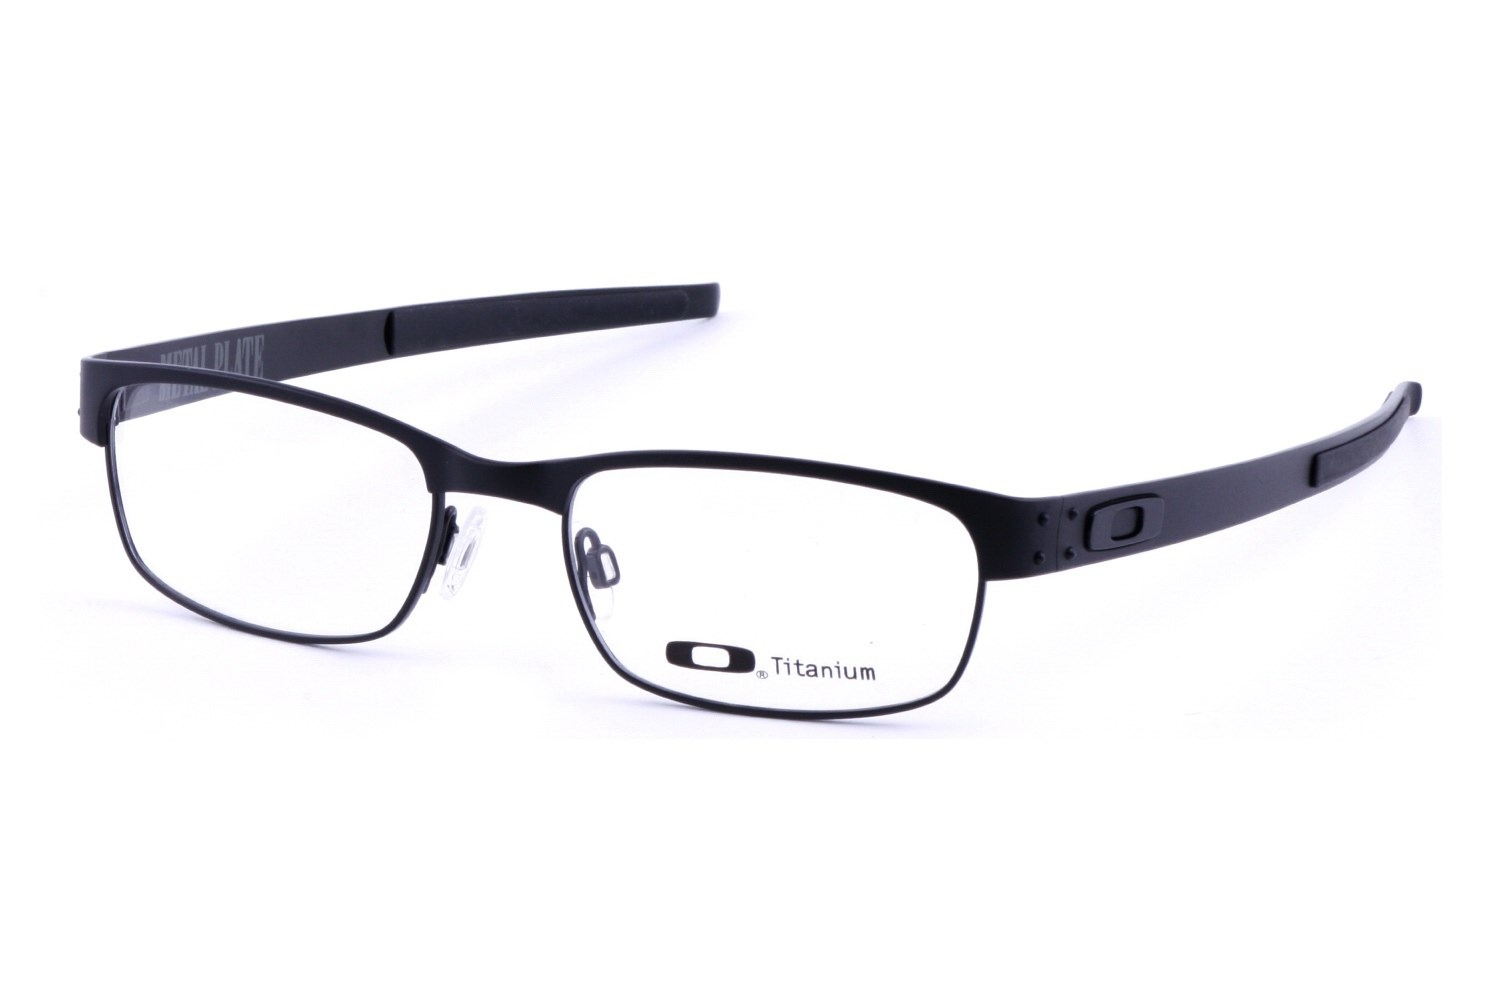 Eyeglass Frame Oakley : Oakley Prescription Glasses Rimless Images & Pictures - Becuo